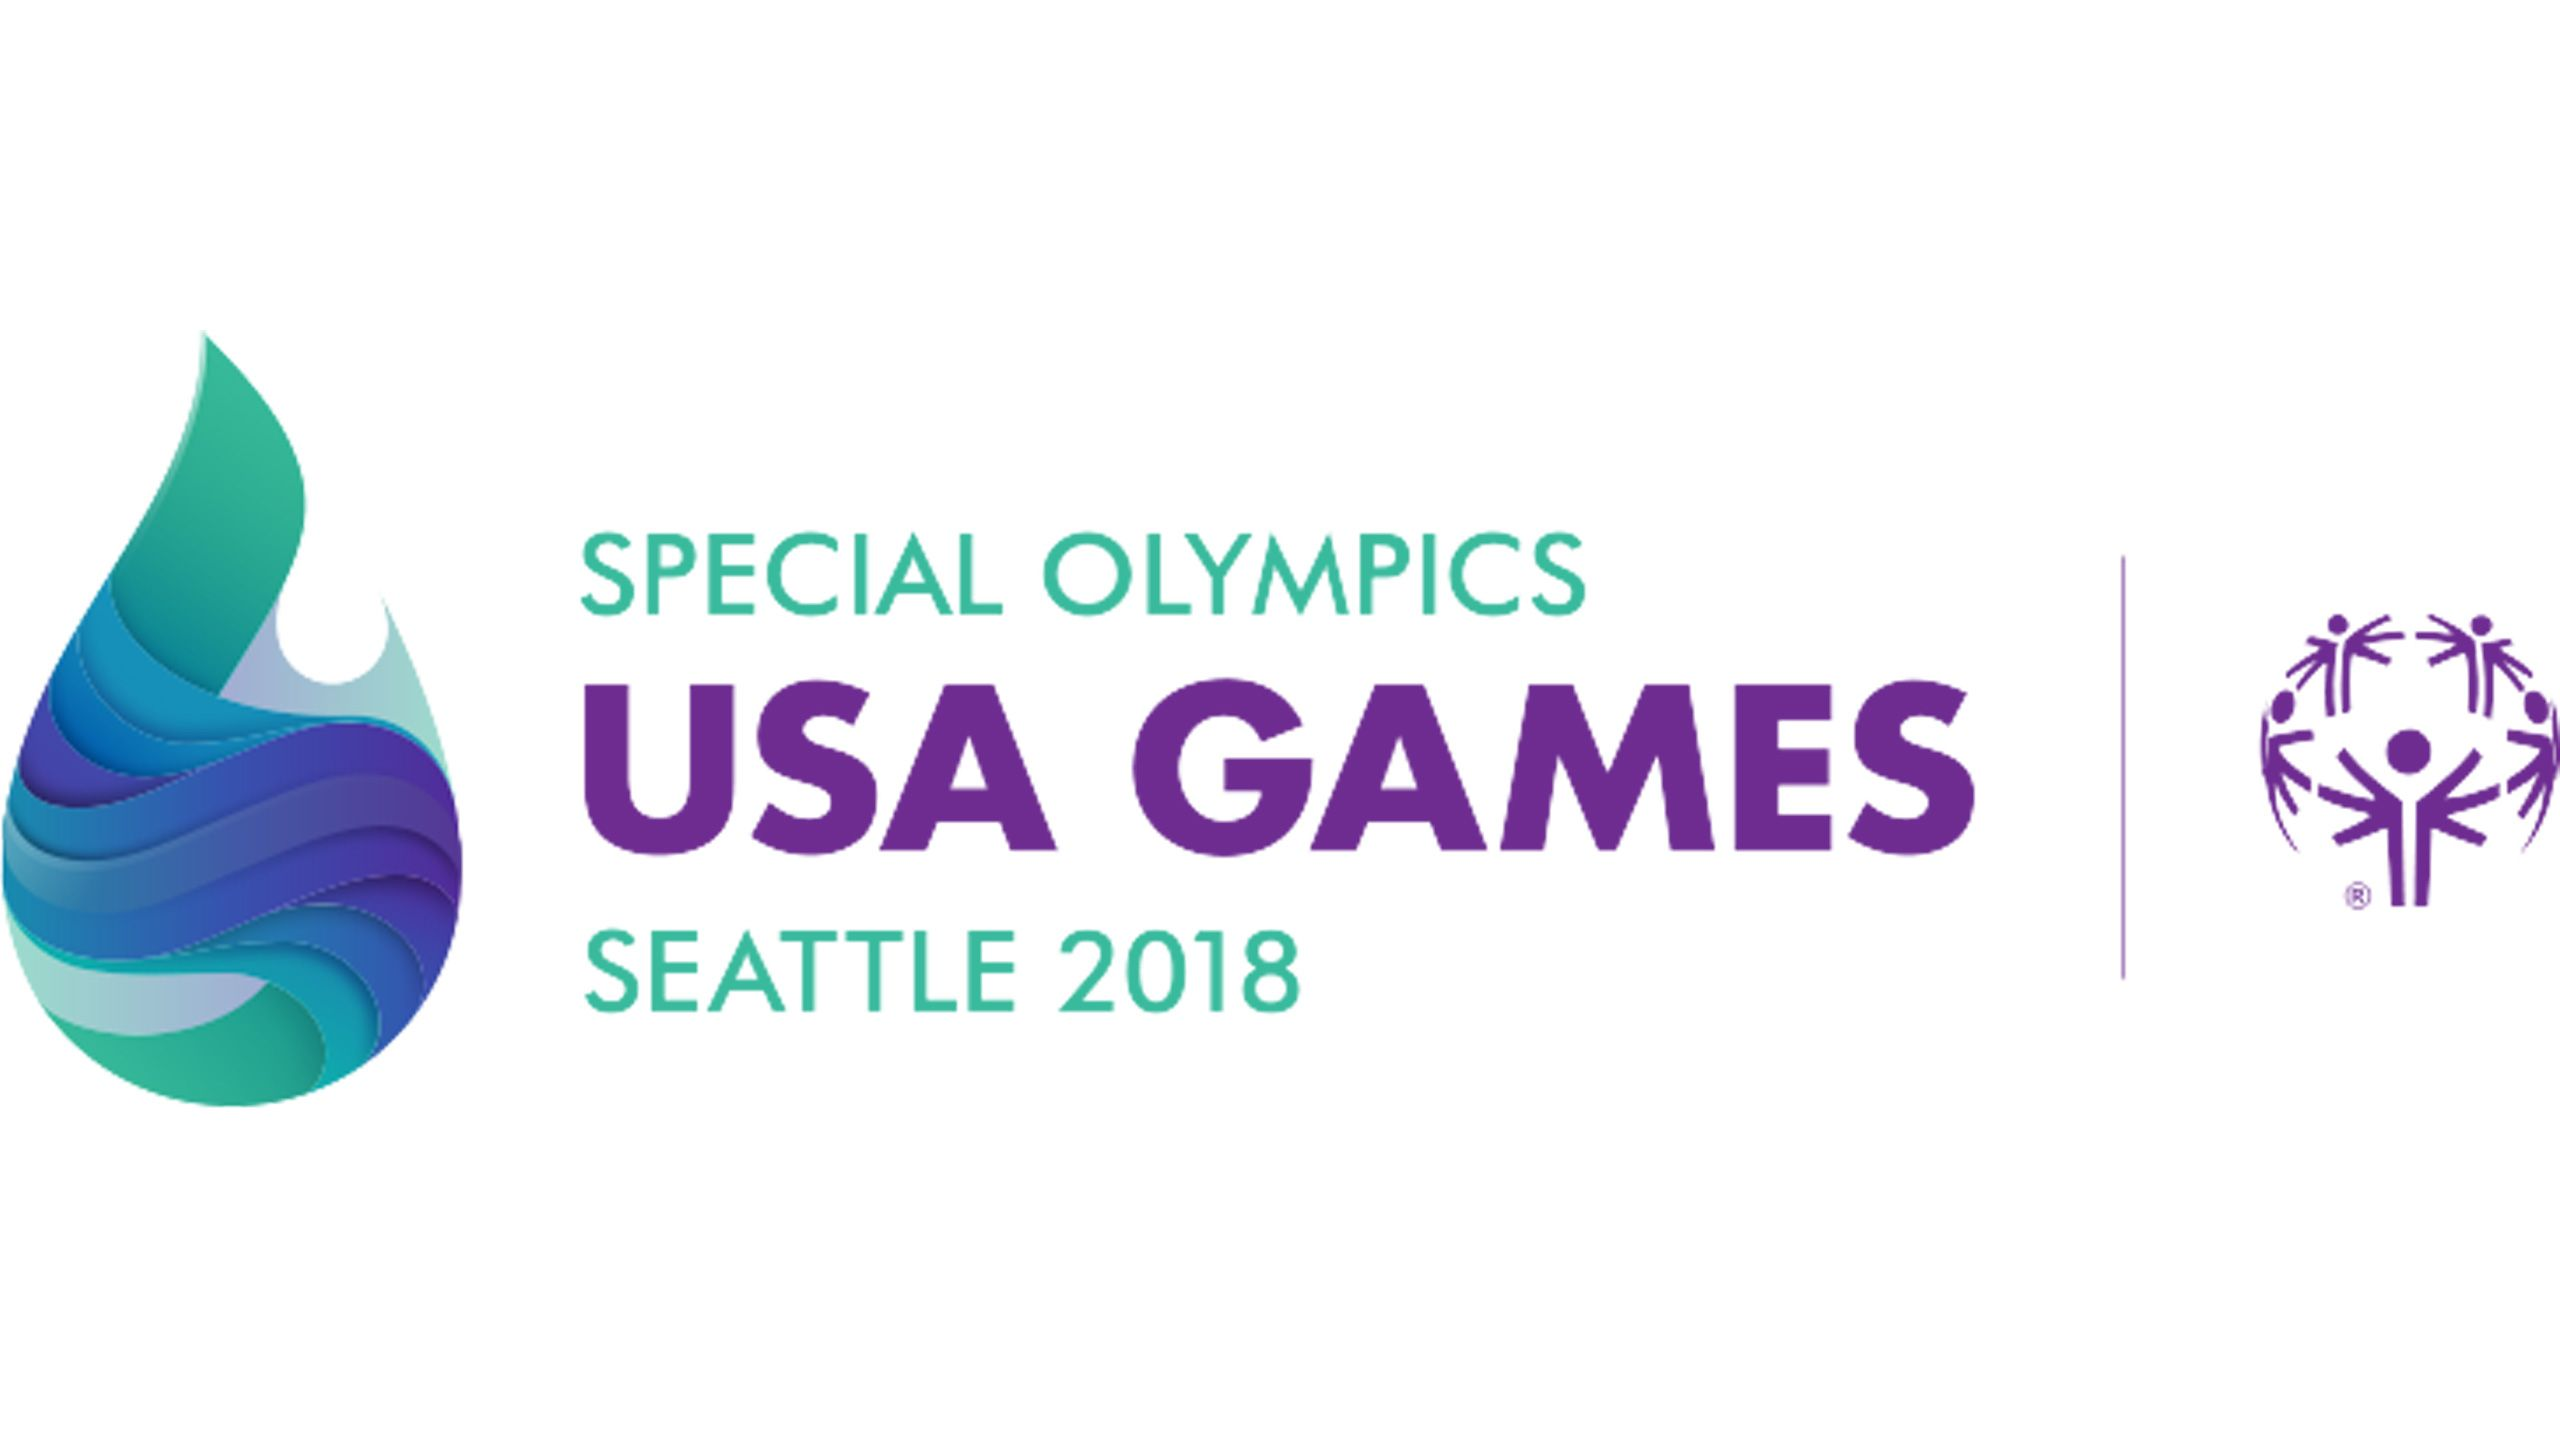 2018 Special Olympics USA Games Opening Ceremony